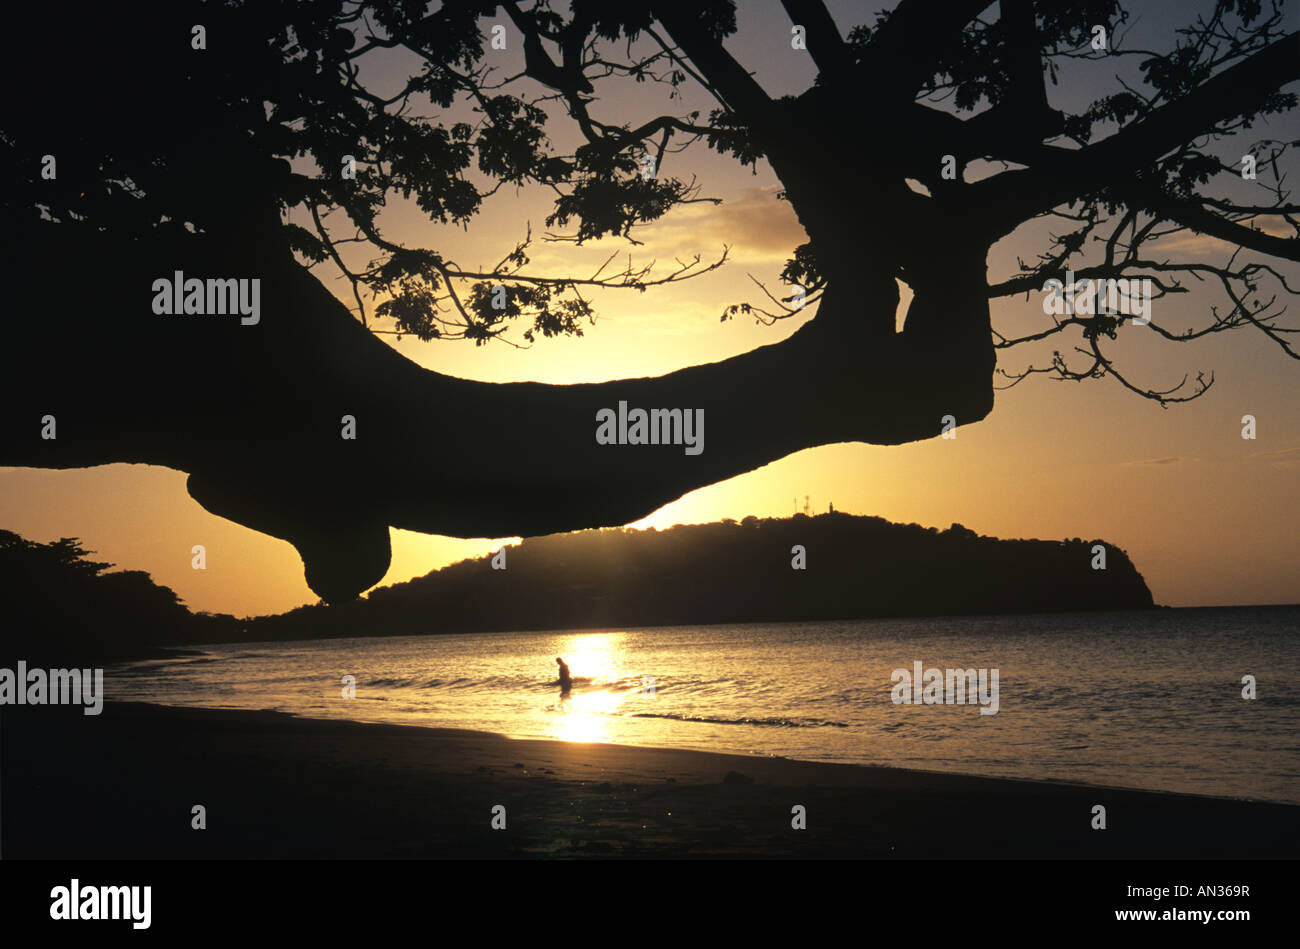 EVENING BATHER 1 - Stock Image